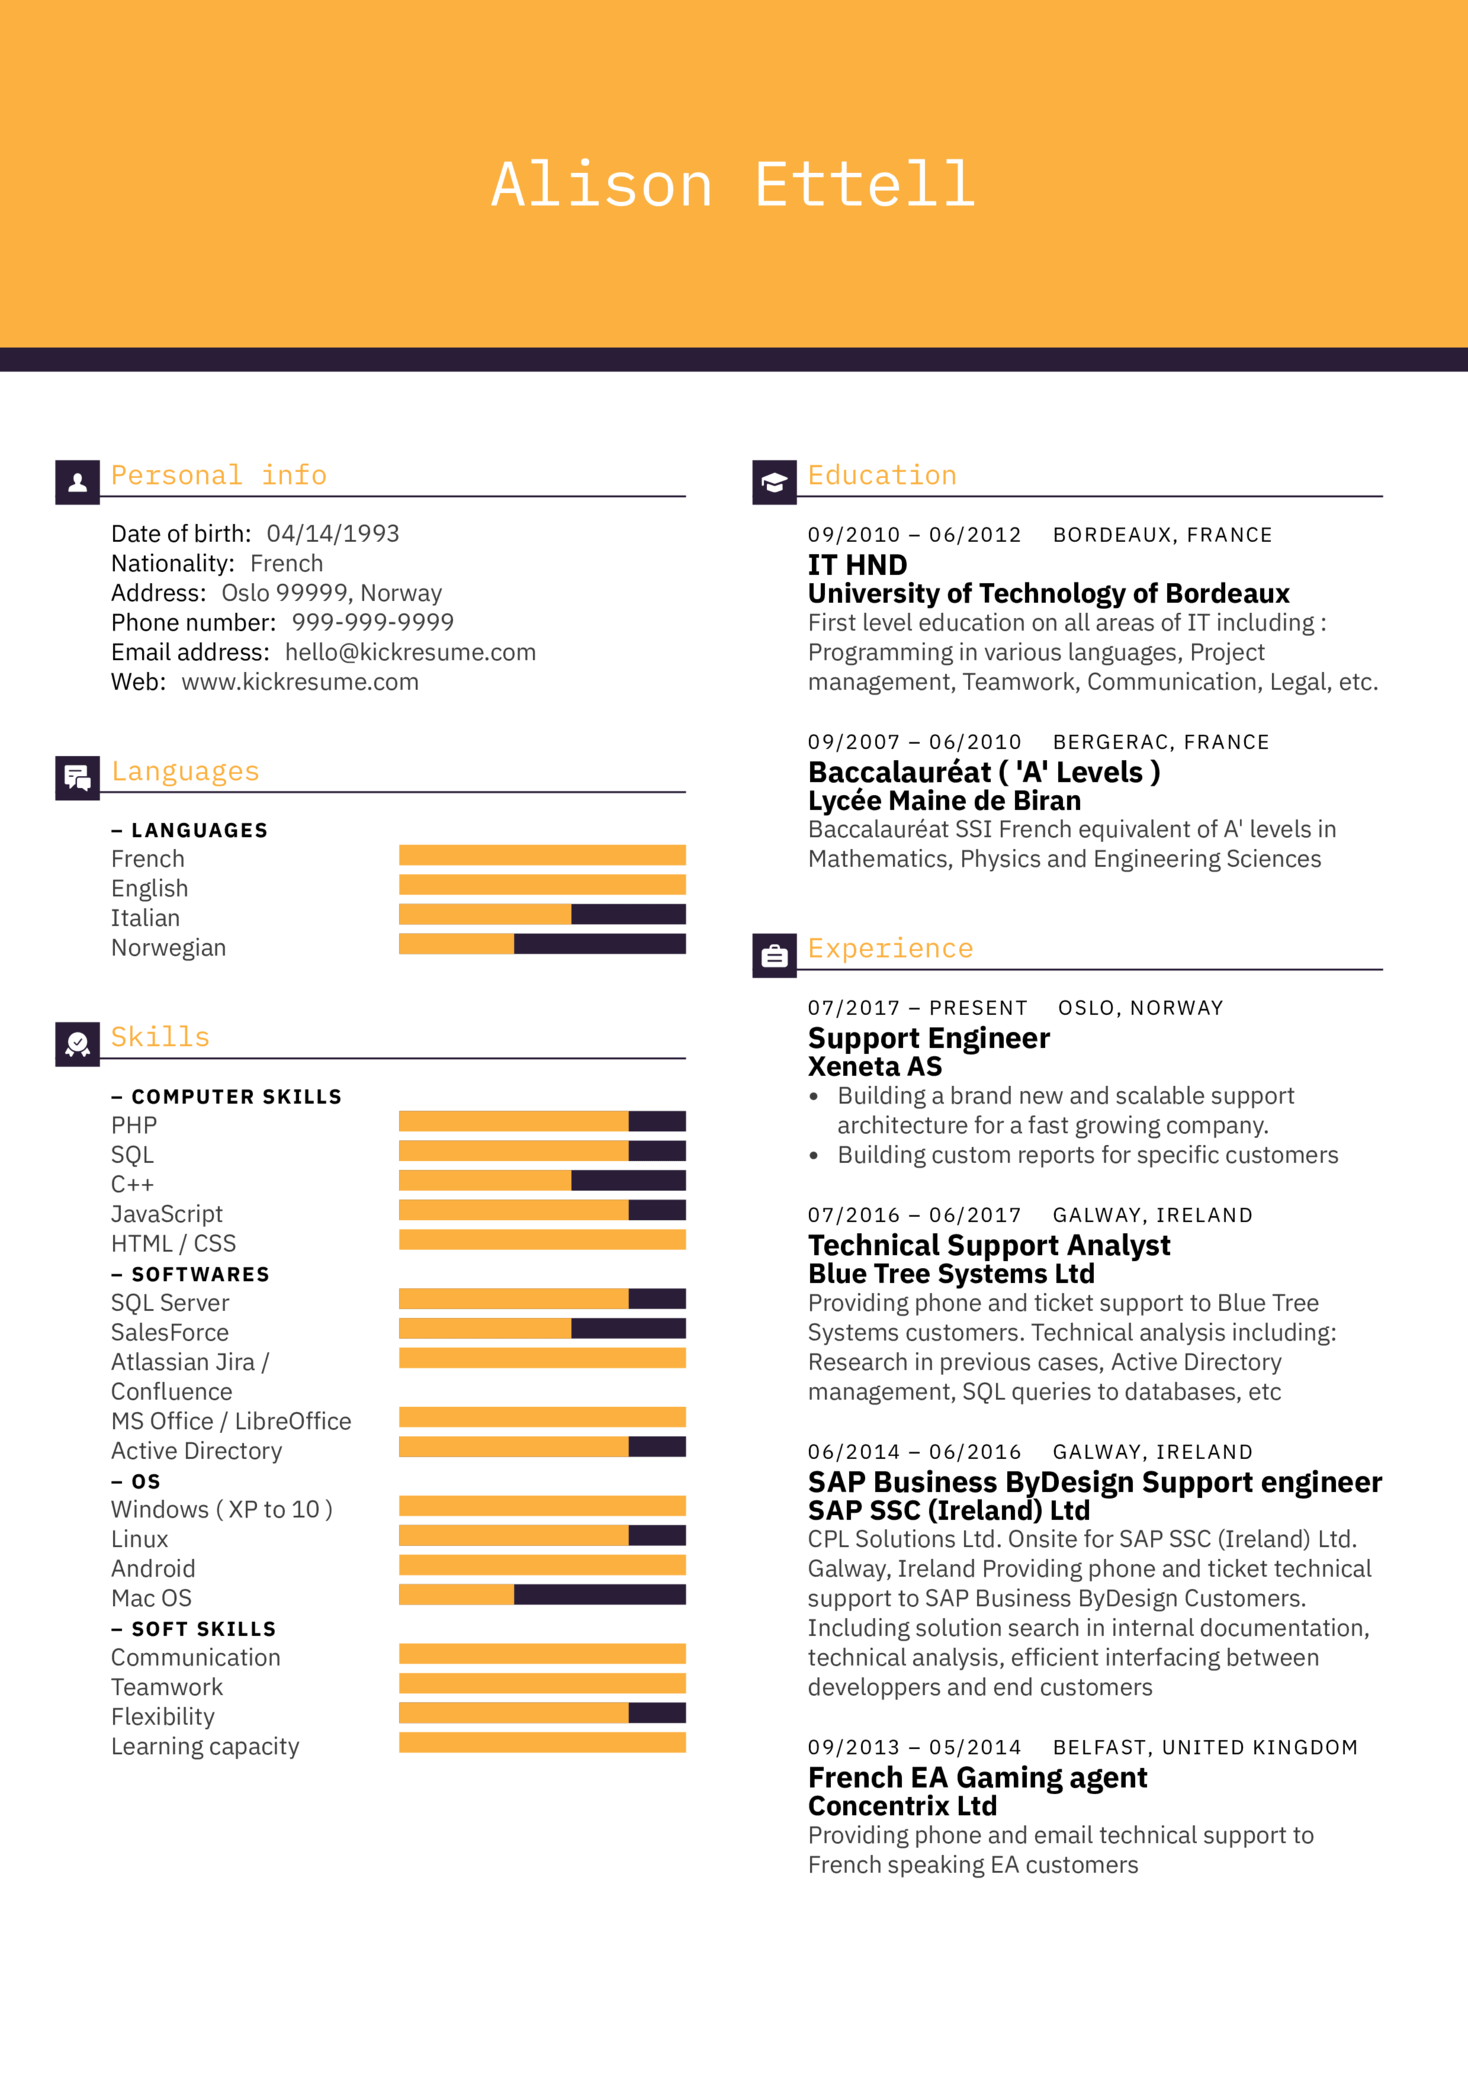 Technical Support Engineer Resume Sample (parte 1)